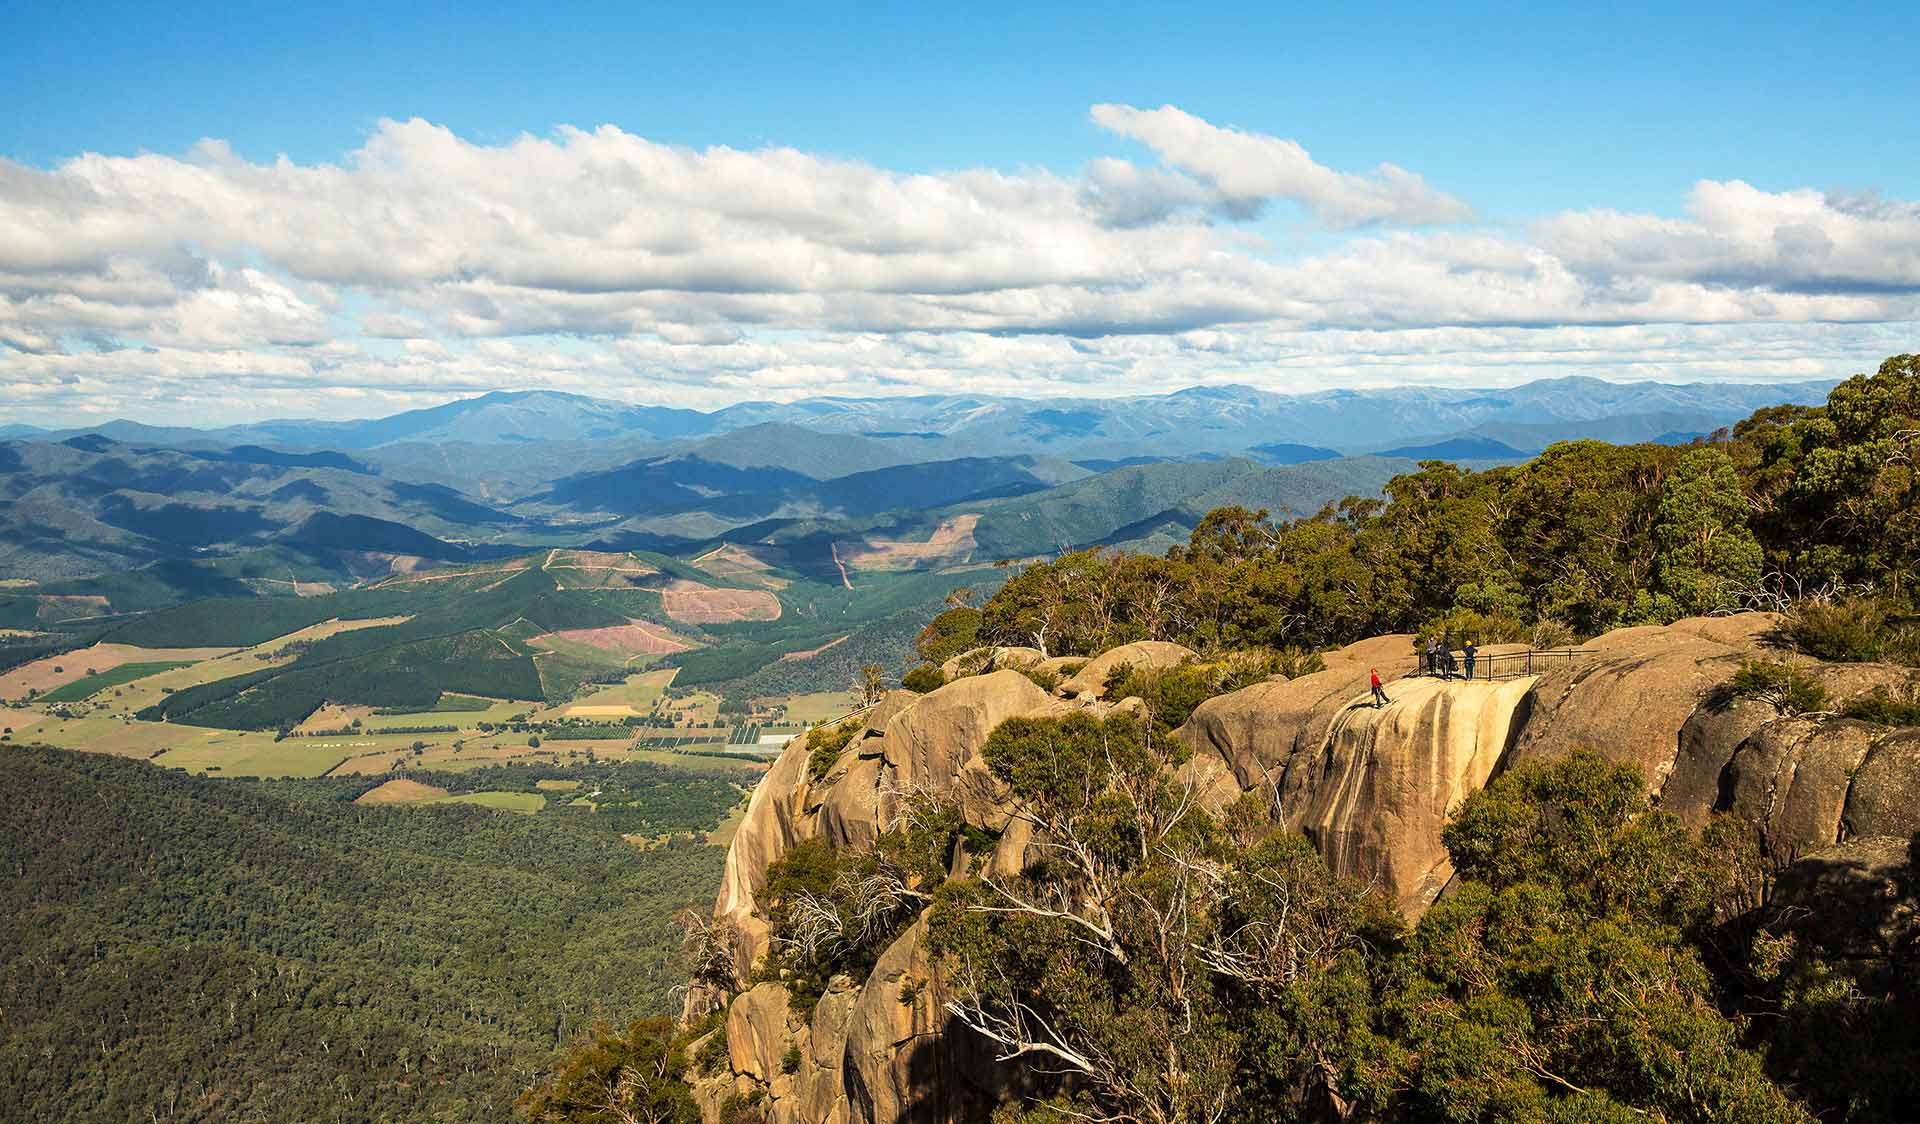 A group of abseilers descend into the Gorge at Mt Buffalo with views of the Bogong High Plains in the back ground.